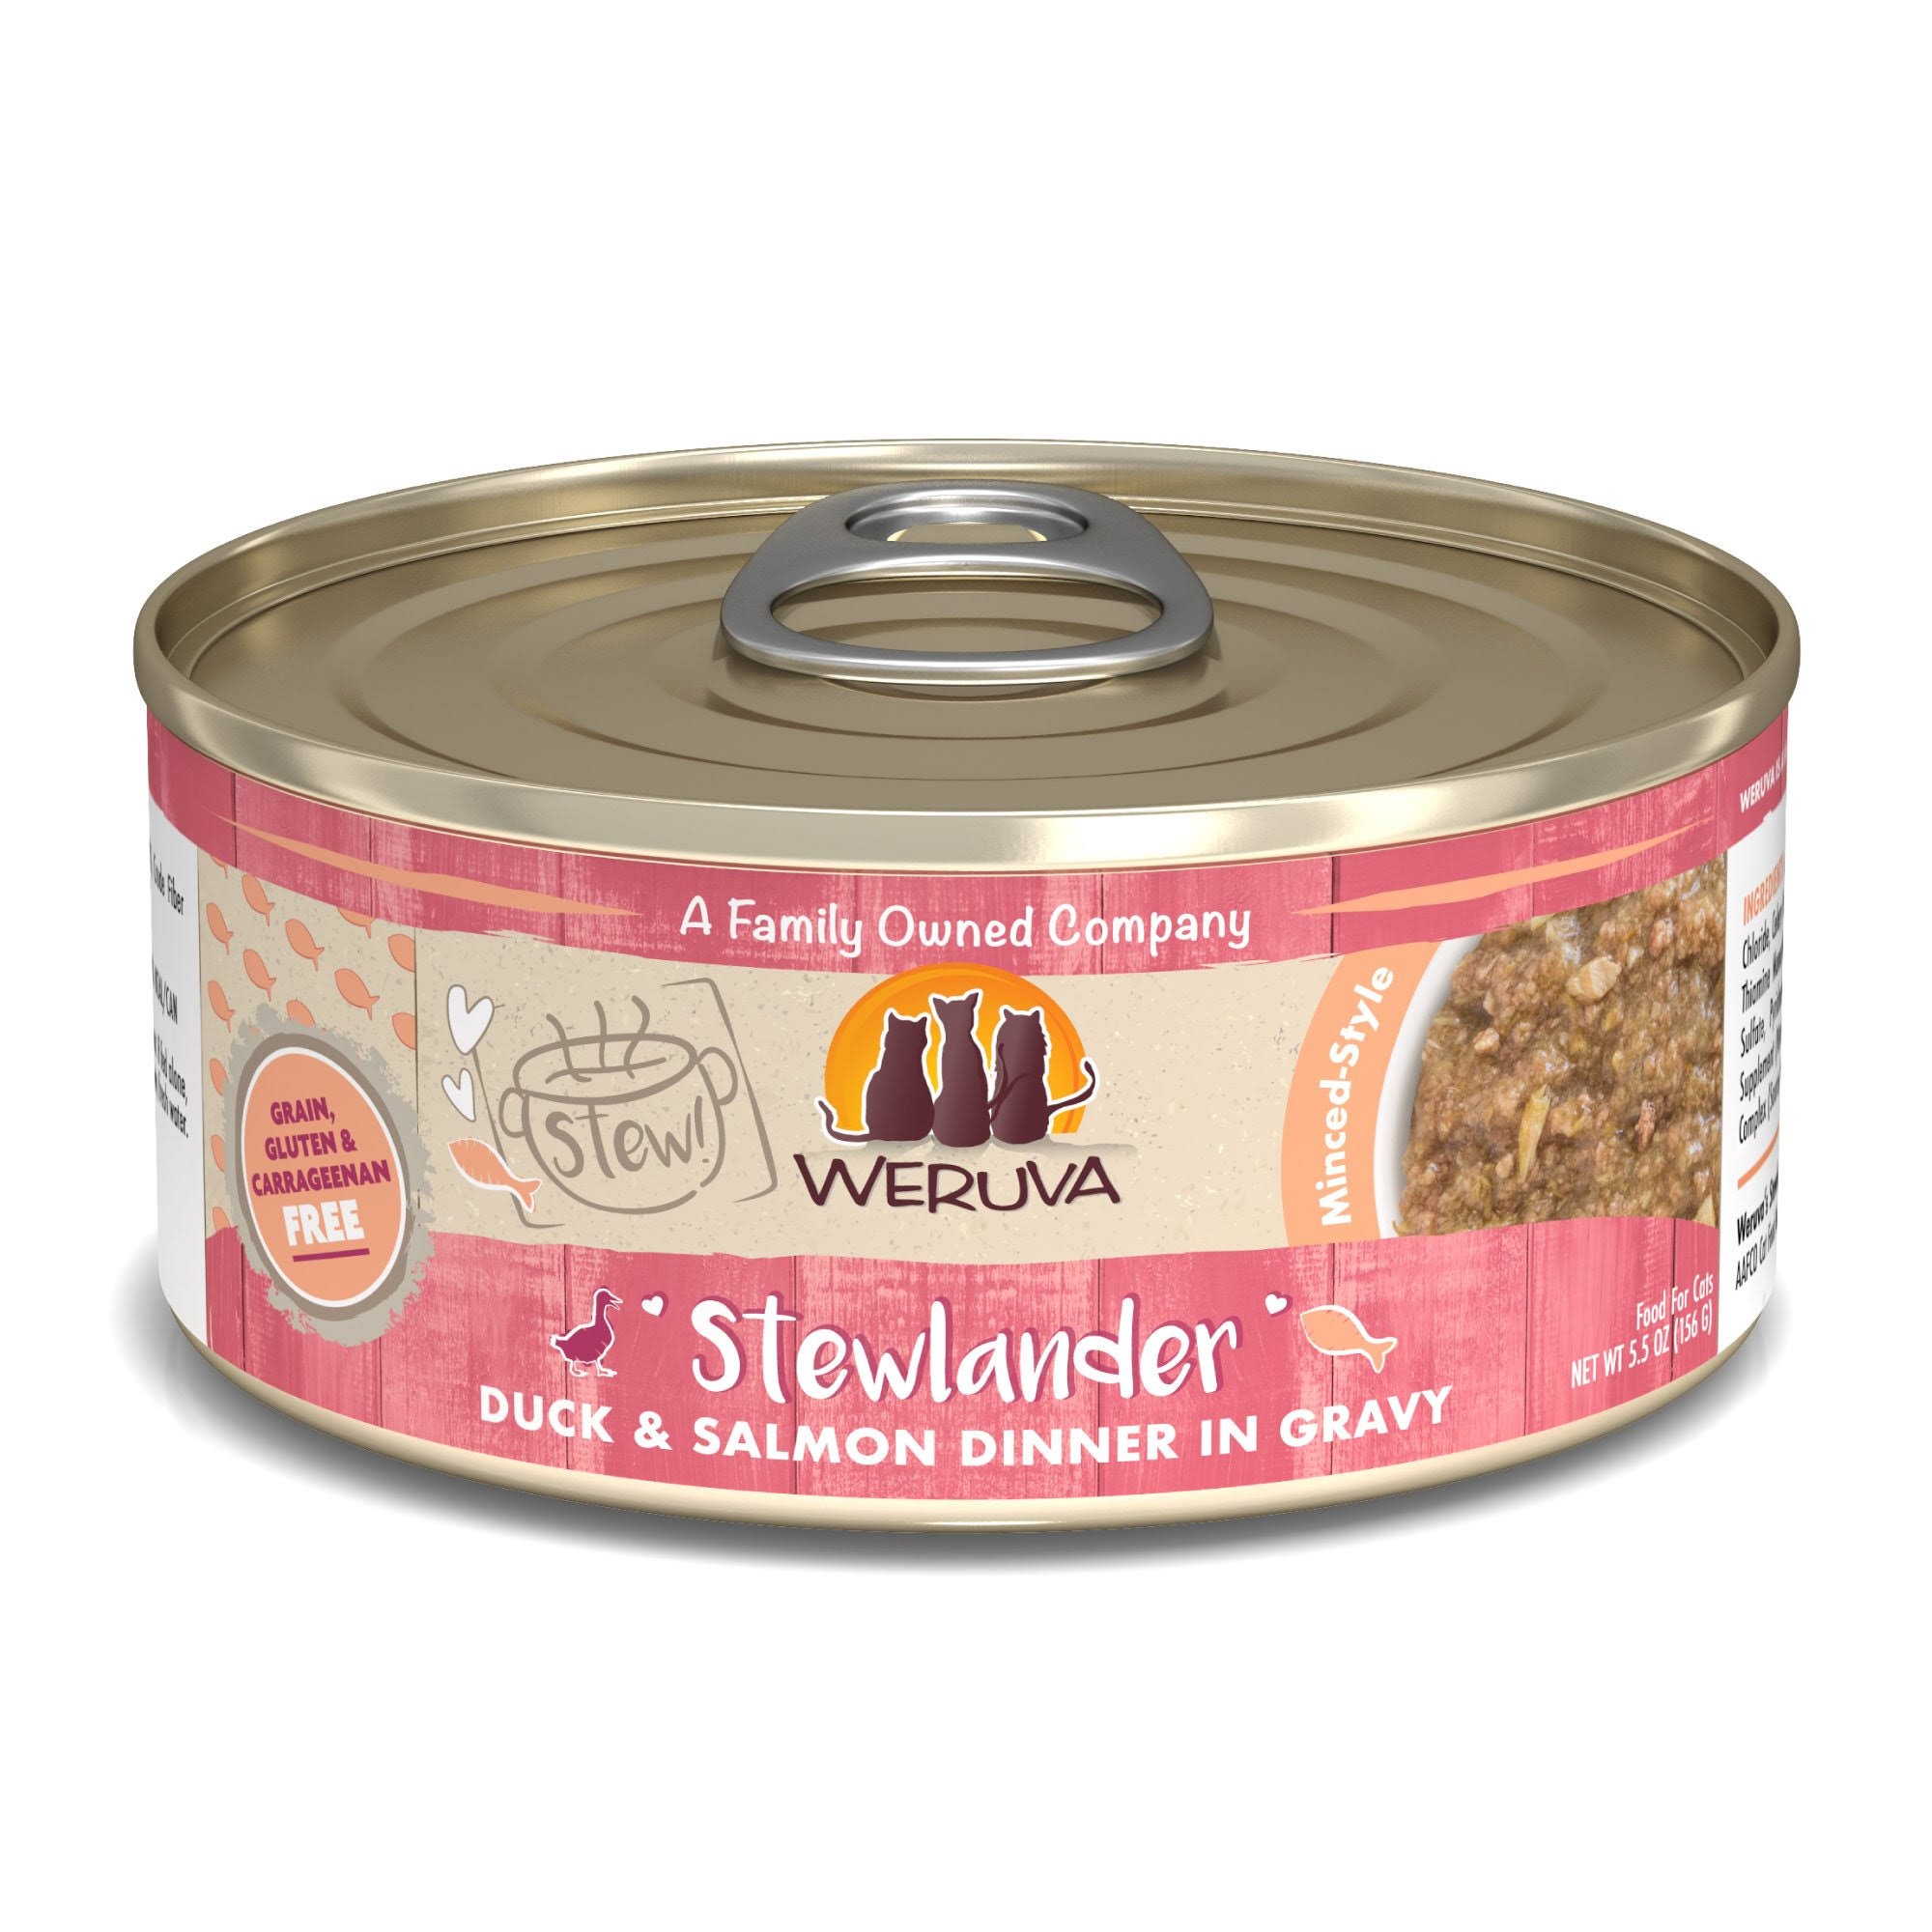 Weruva Stew! Stewlander Duck & Salmon Dinner in Gravy Wet Cat Food, 5.5 oz.